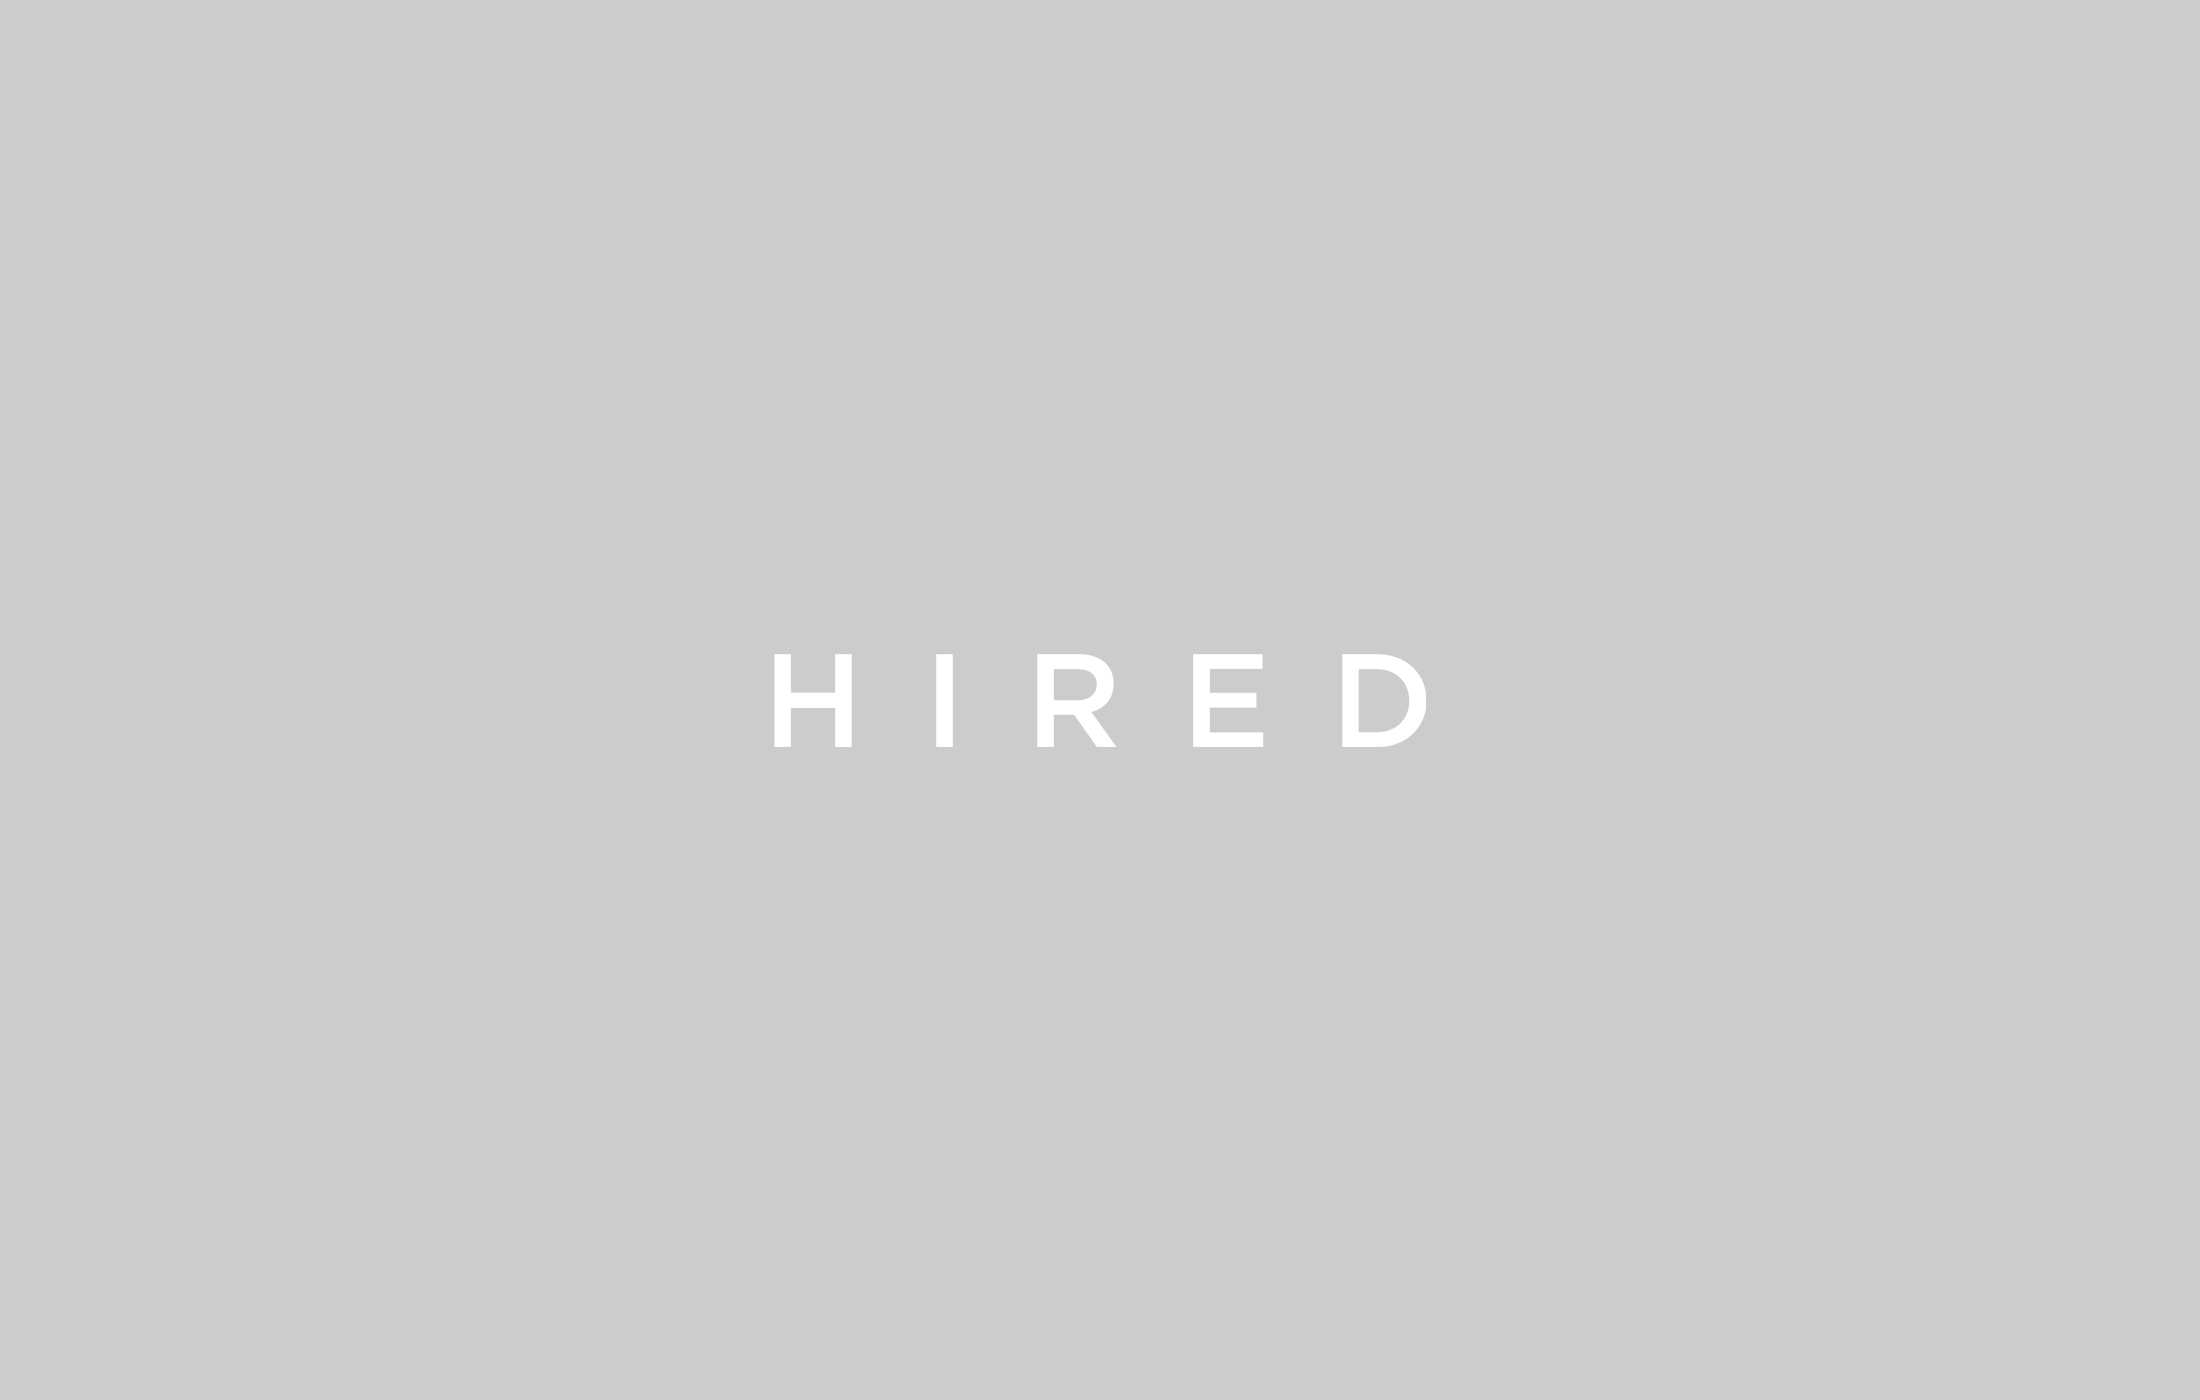 hired-for-employers-introducing-a-new-way-to-manage-interviews